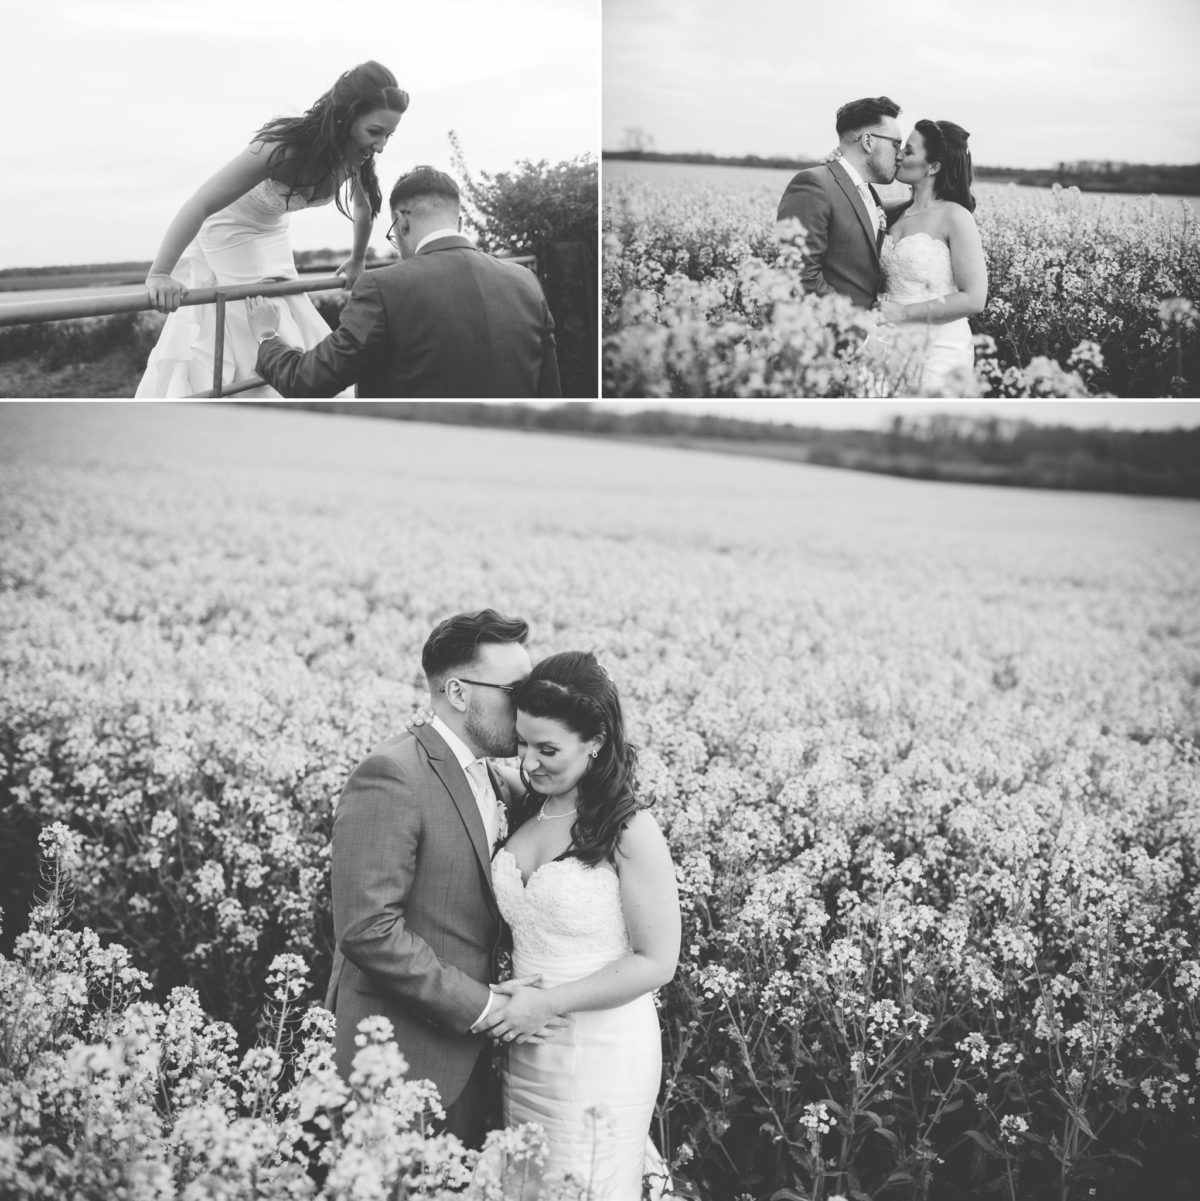 cripps_barn_gloucesterhsire_welsh_wedding_photographer_rachel_lambert_photography_jordan_amy_ 124